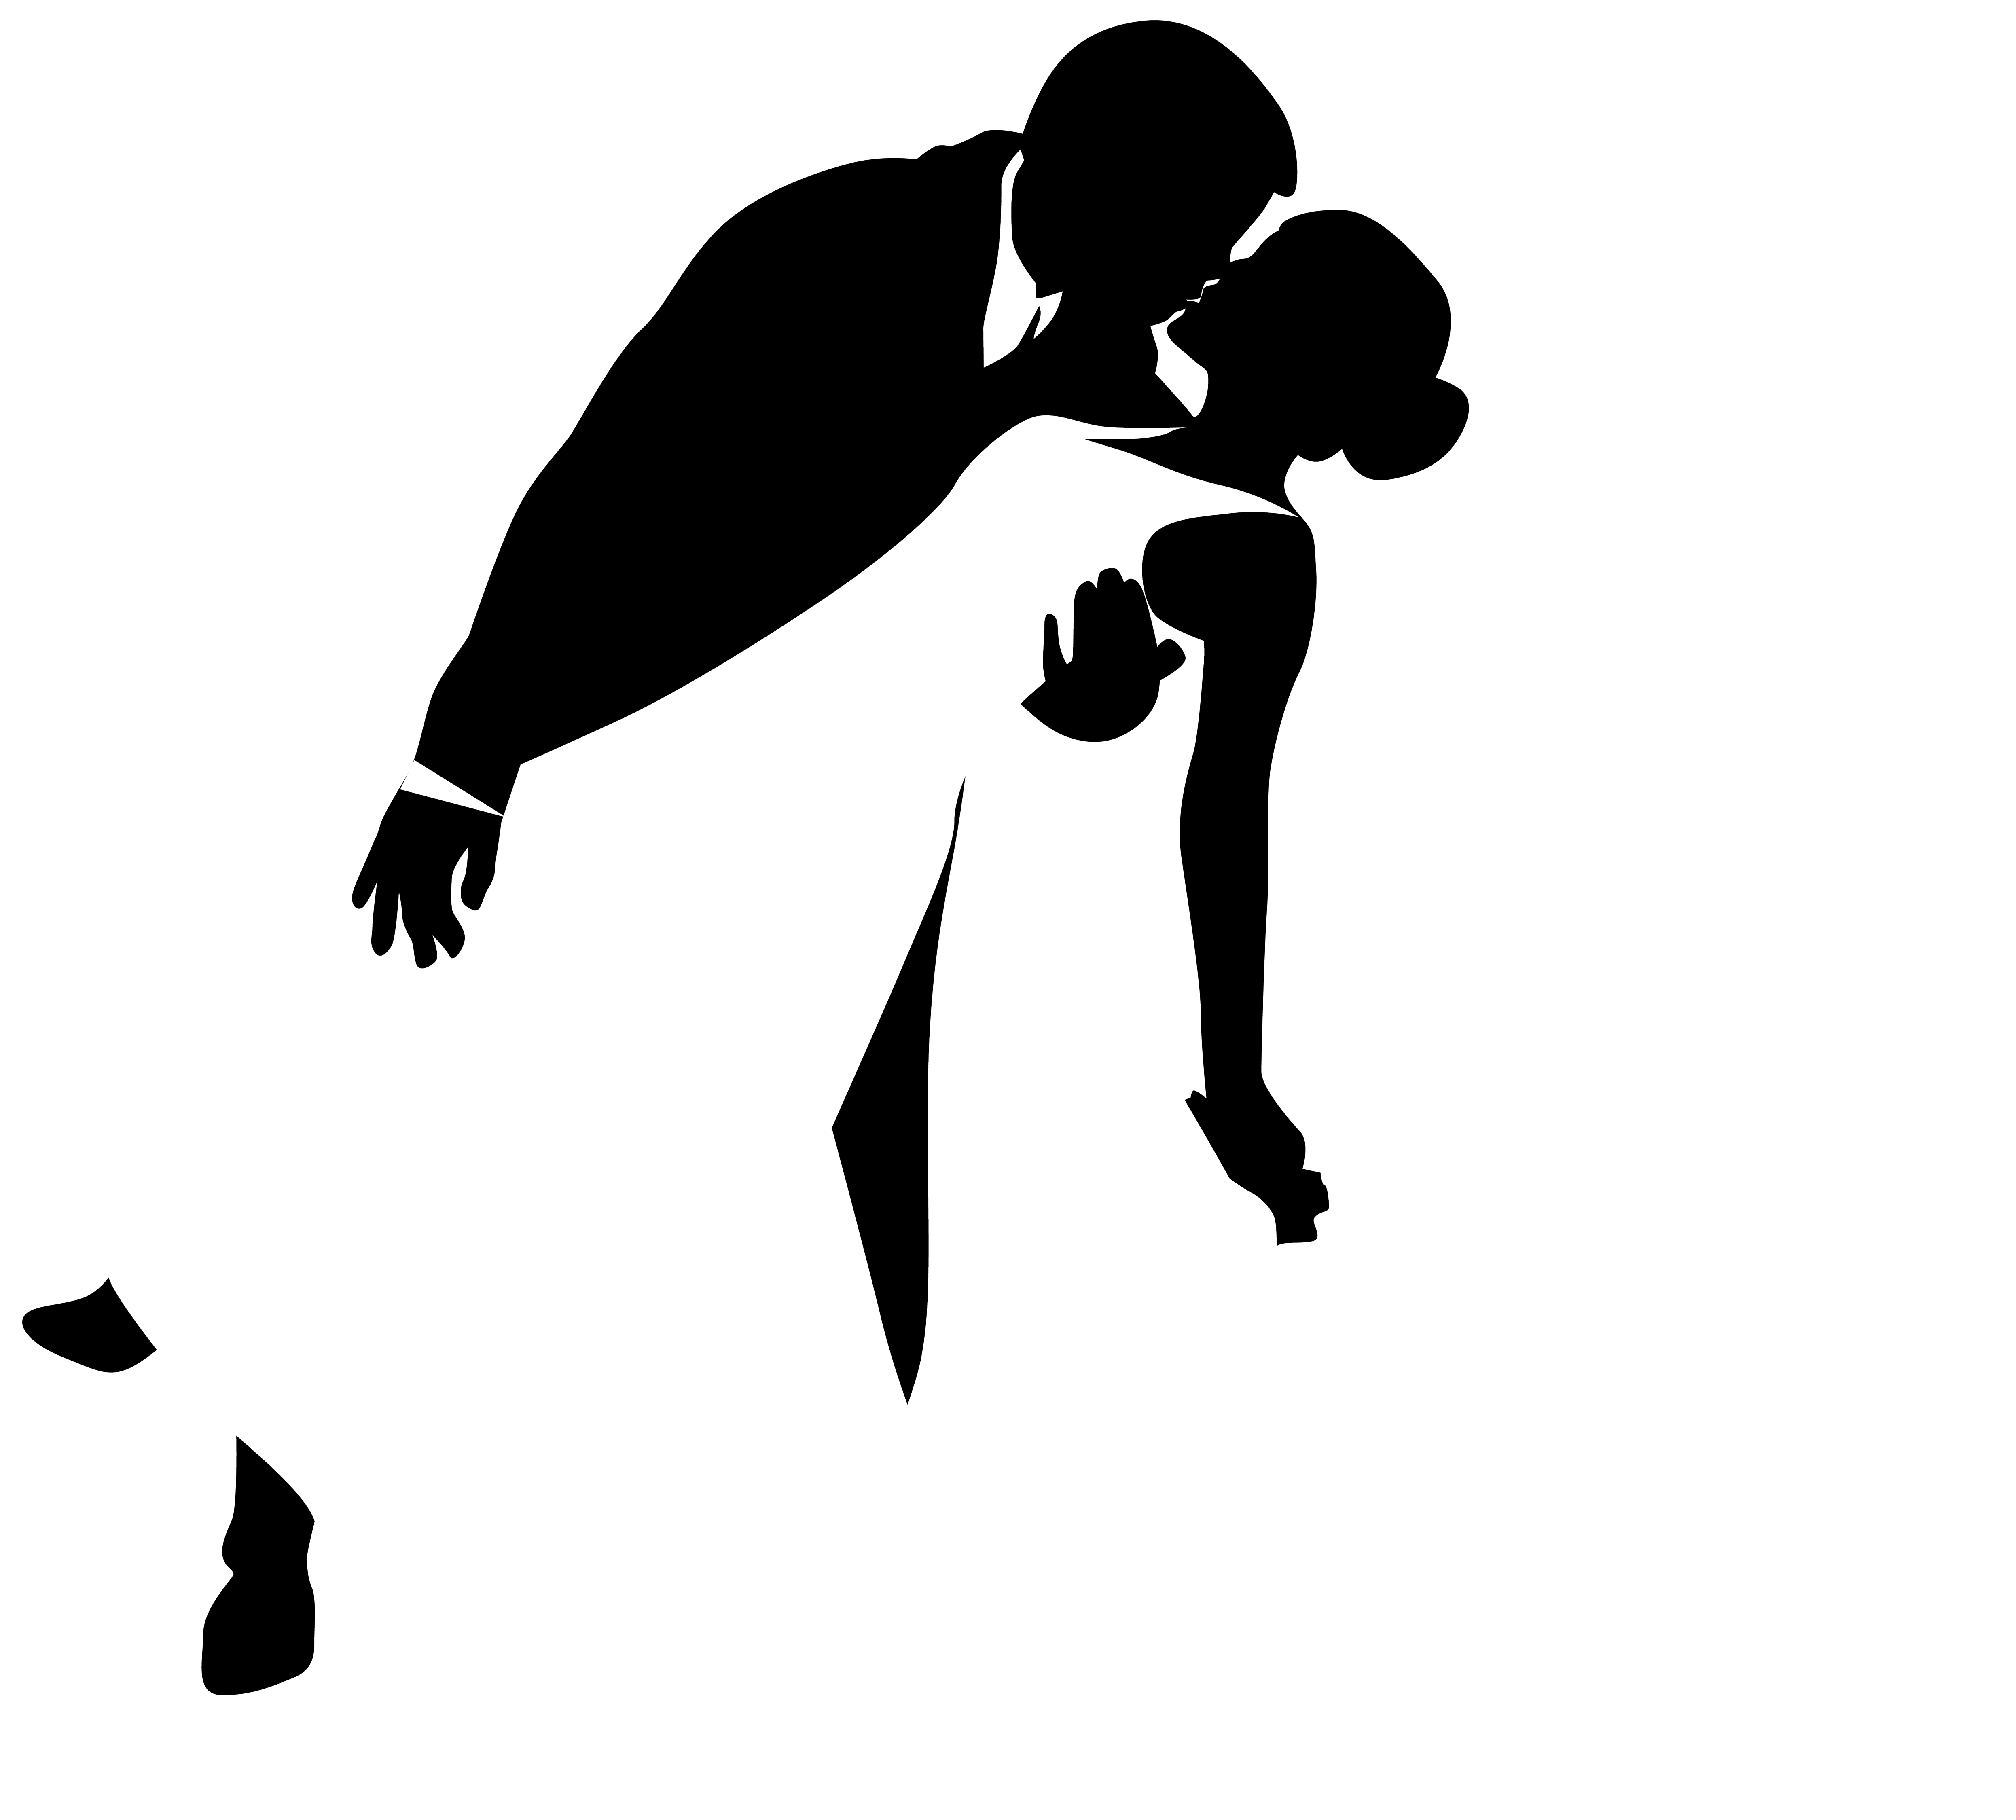 bride and groom silhouette free clip art at getdrawings com free rh getdrawings com bridge clip art free images bride clipart images